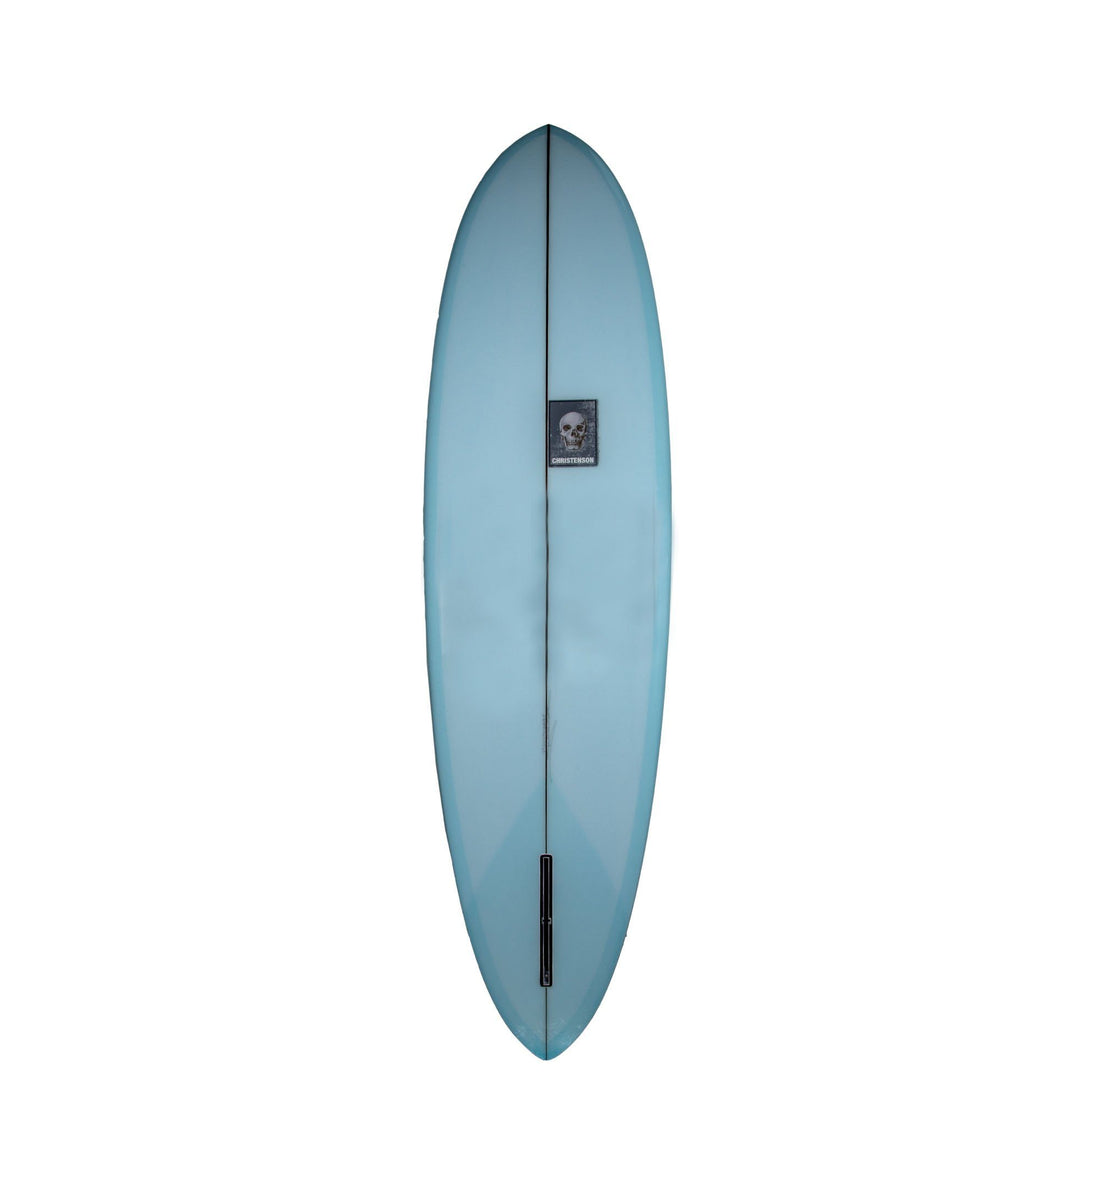 "Christenson Surfboards C-Bucket - Aqua Tint - 7'0"" - Surf - Iron and Resin"